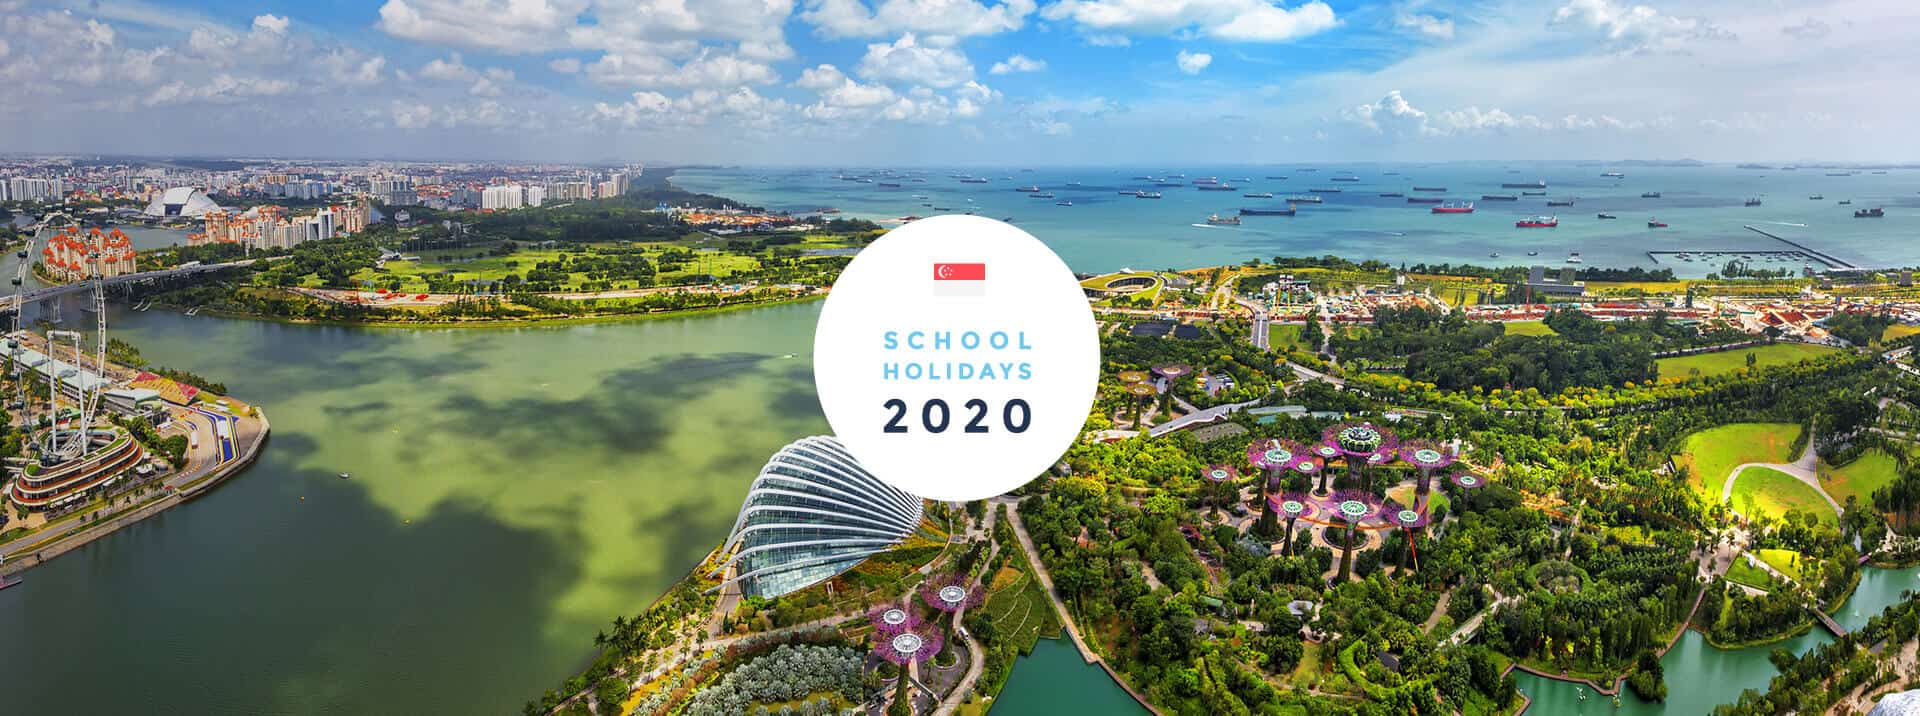 FeatImage_SchoolHolidaysSingapore_1920x716-min